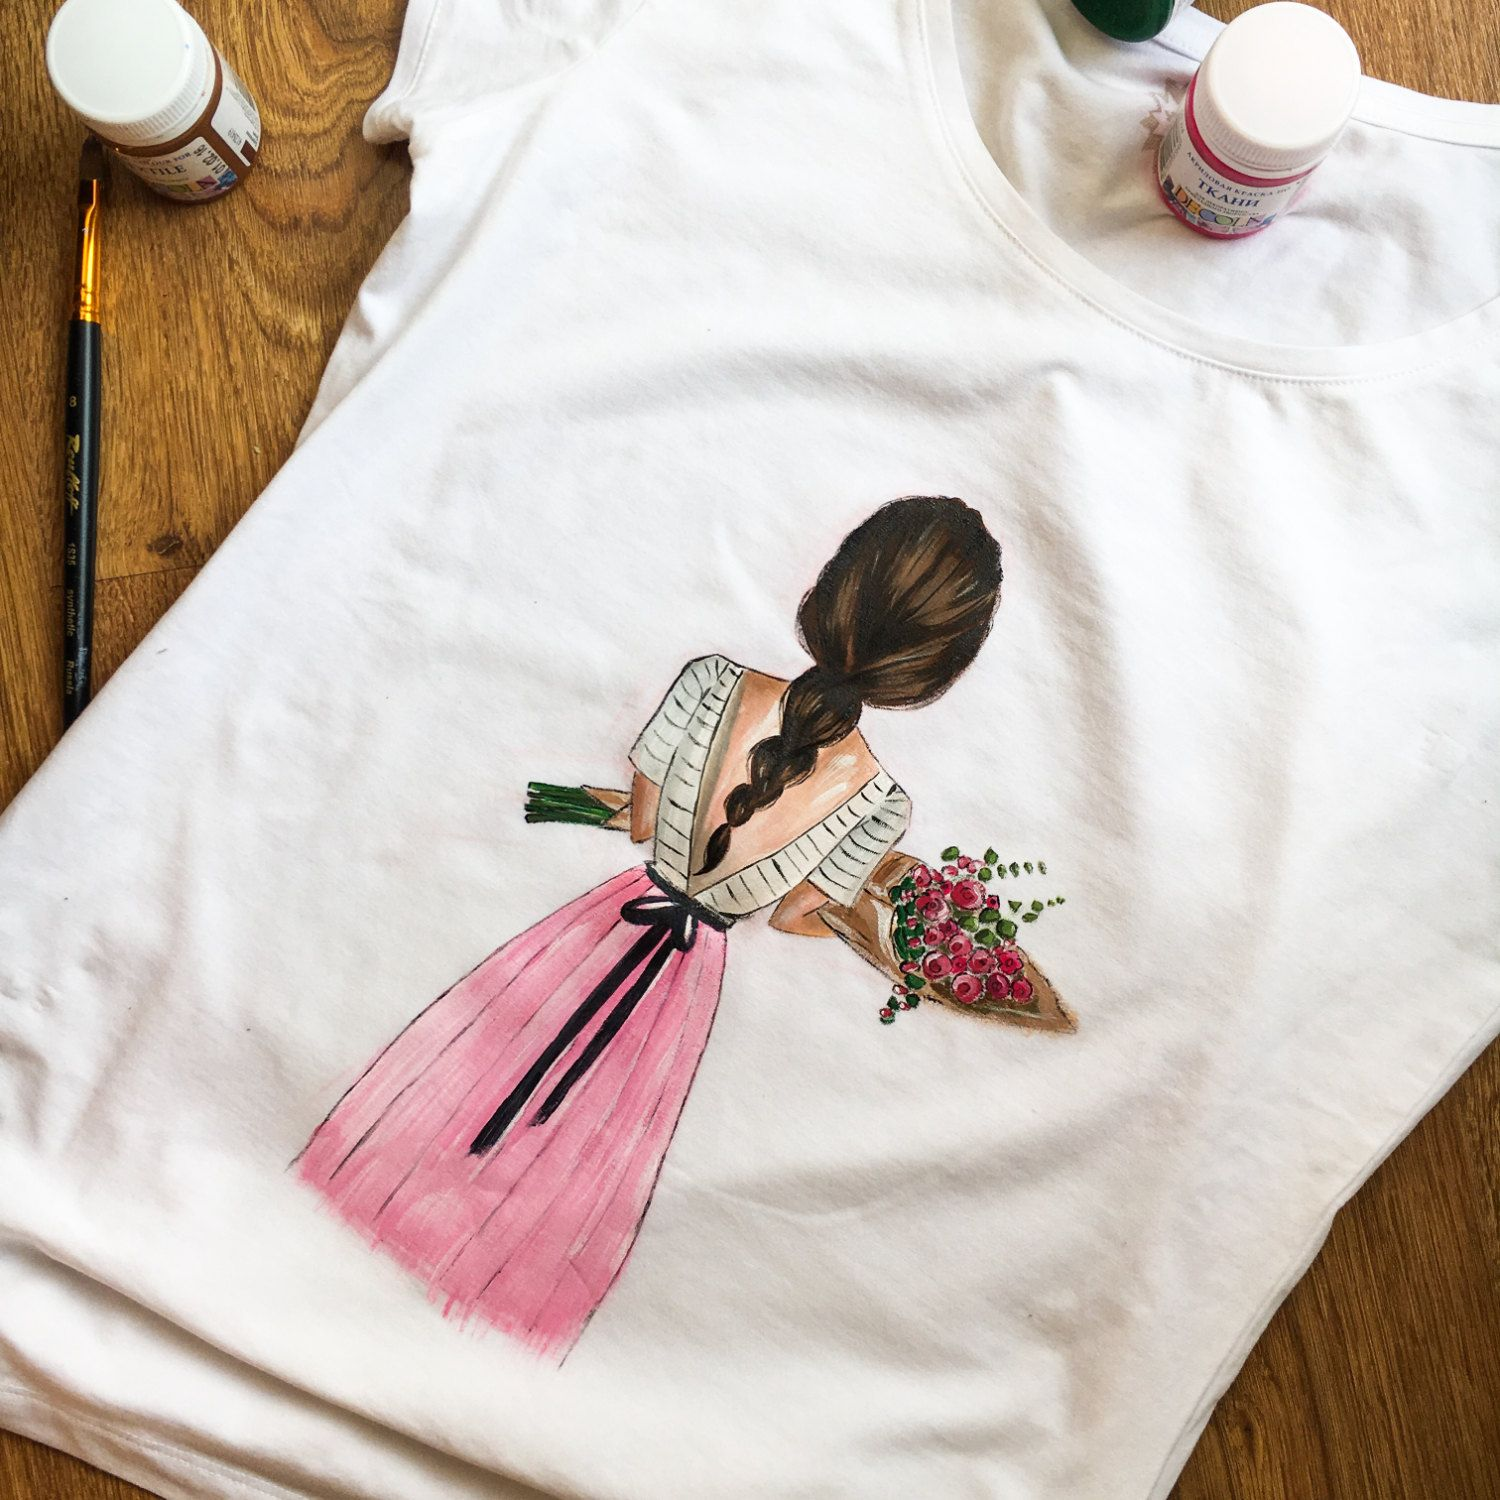 Hand Painted T Shirt Girl Fashion Illustration T Shirt Cotton T Shirt Bright T Shirt Creative Clothes U Painted Clothes Fabric Paint Shirt Hand Painted Dress